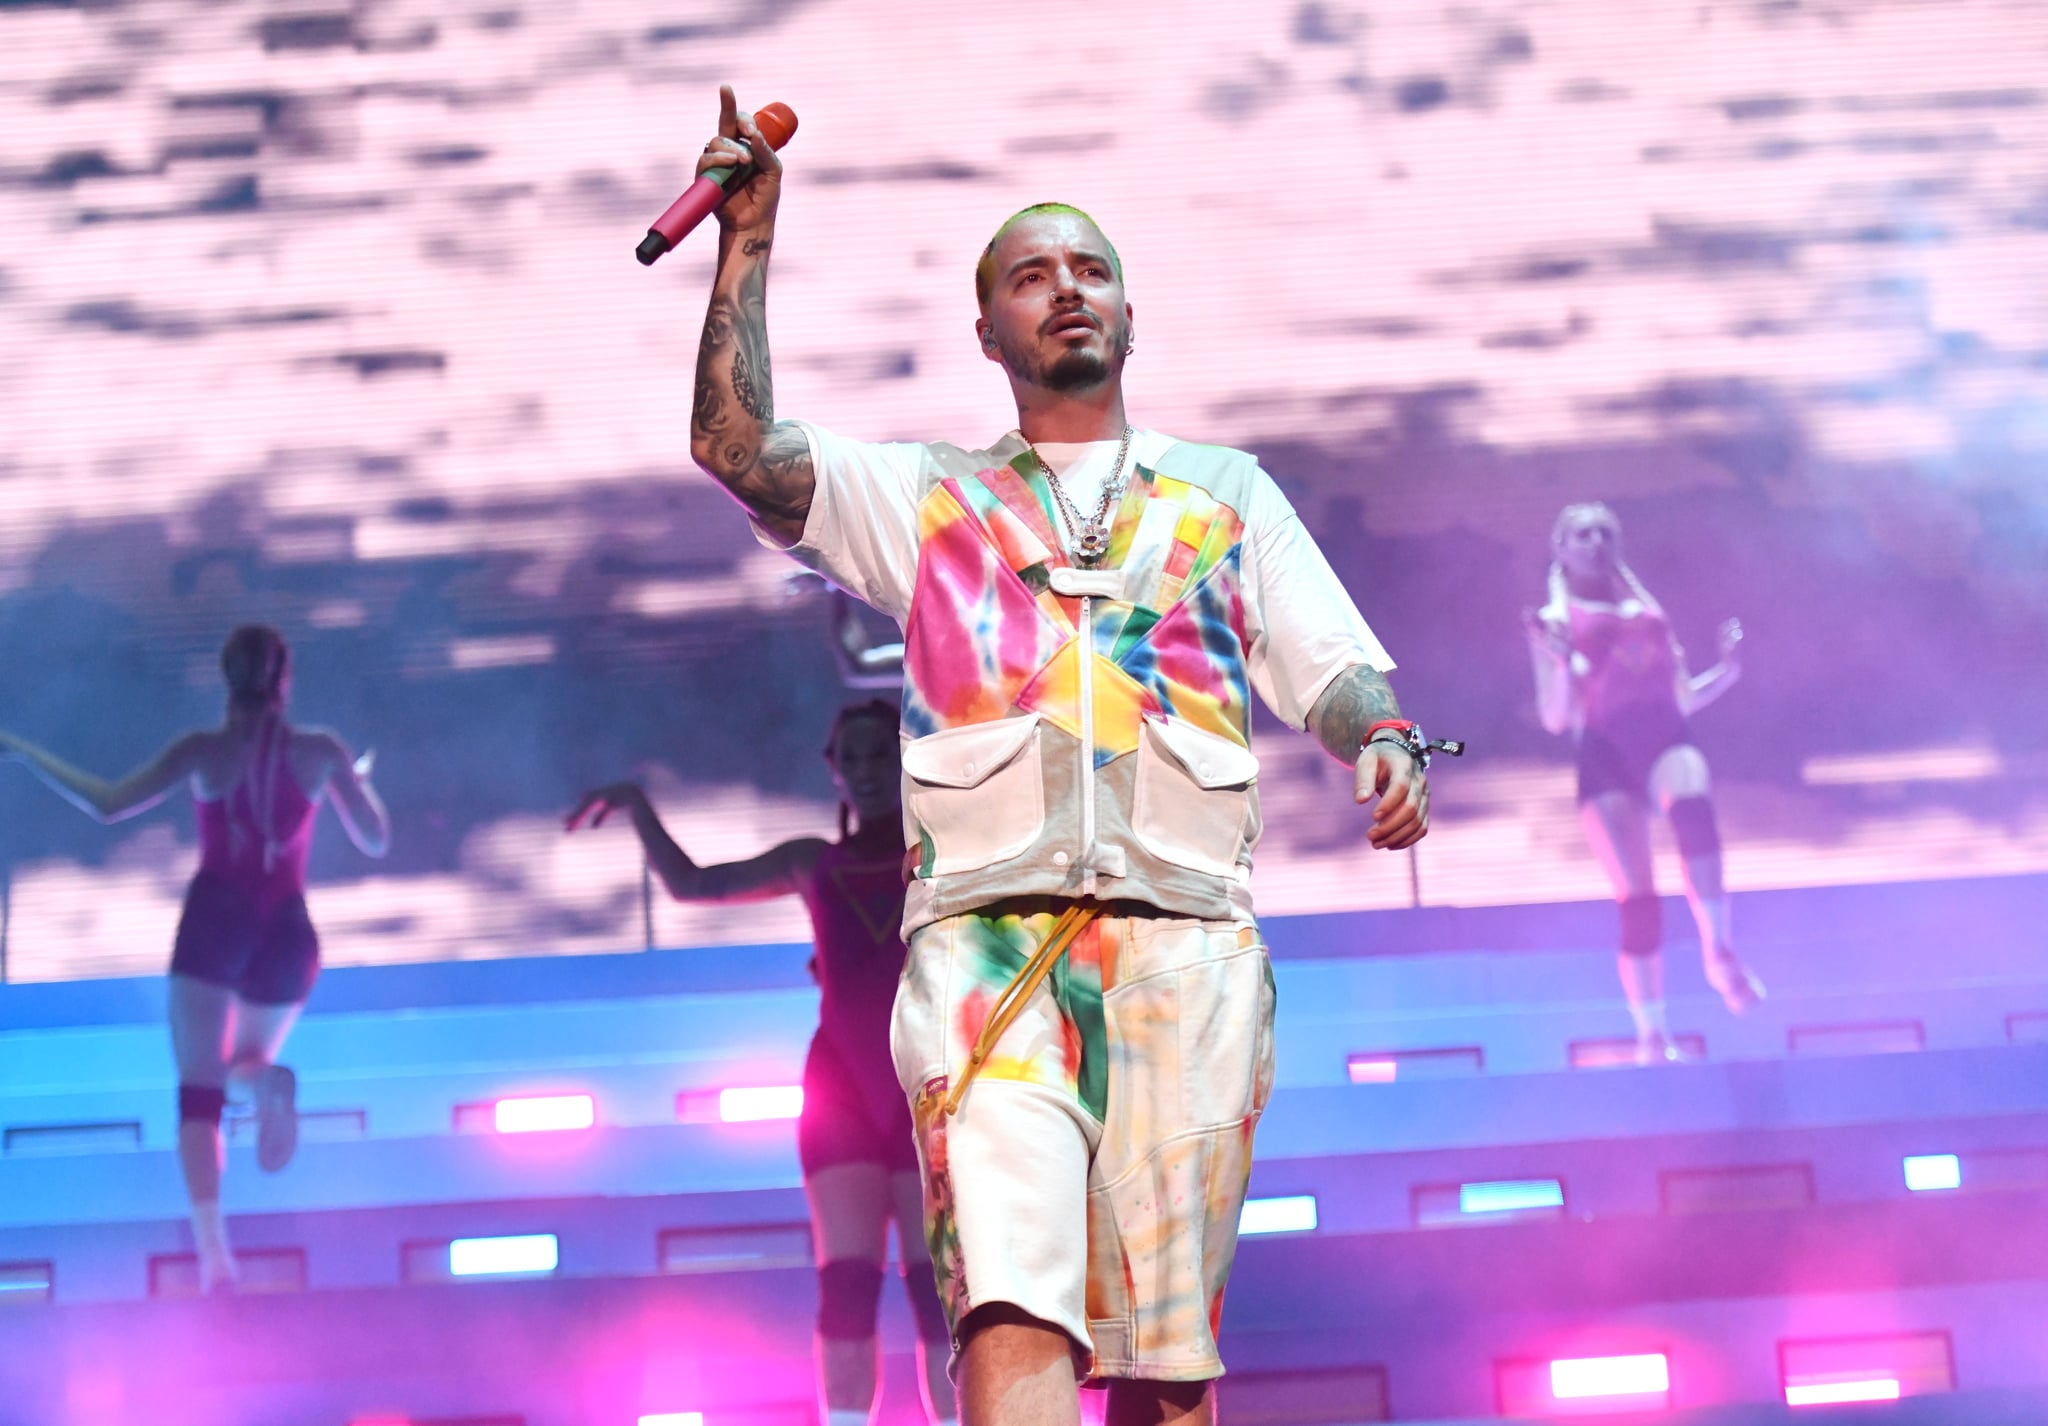 INDIO, CALIFORNIA - APRIL 13: Singer J Balvin performs onstage during Weekend 1, Day 2 of the Coachella Valley Music and Arts Festival on April 13, 2019 in Indio, California. (Photo by Scott Dudelson/Getty Images for Coachella)